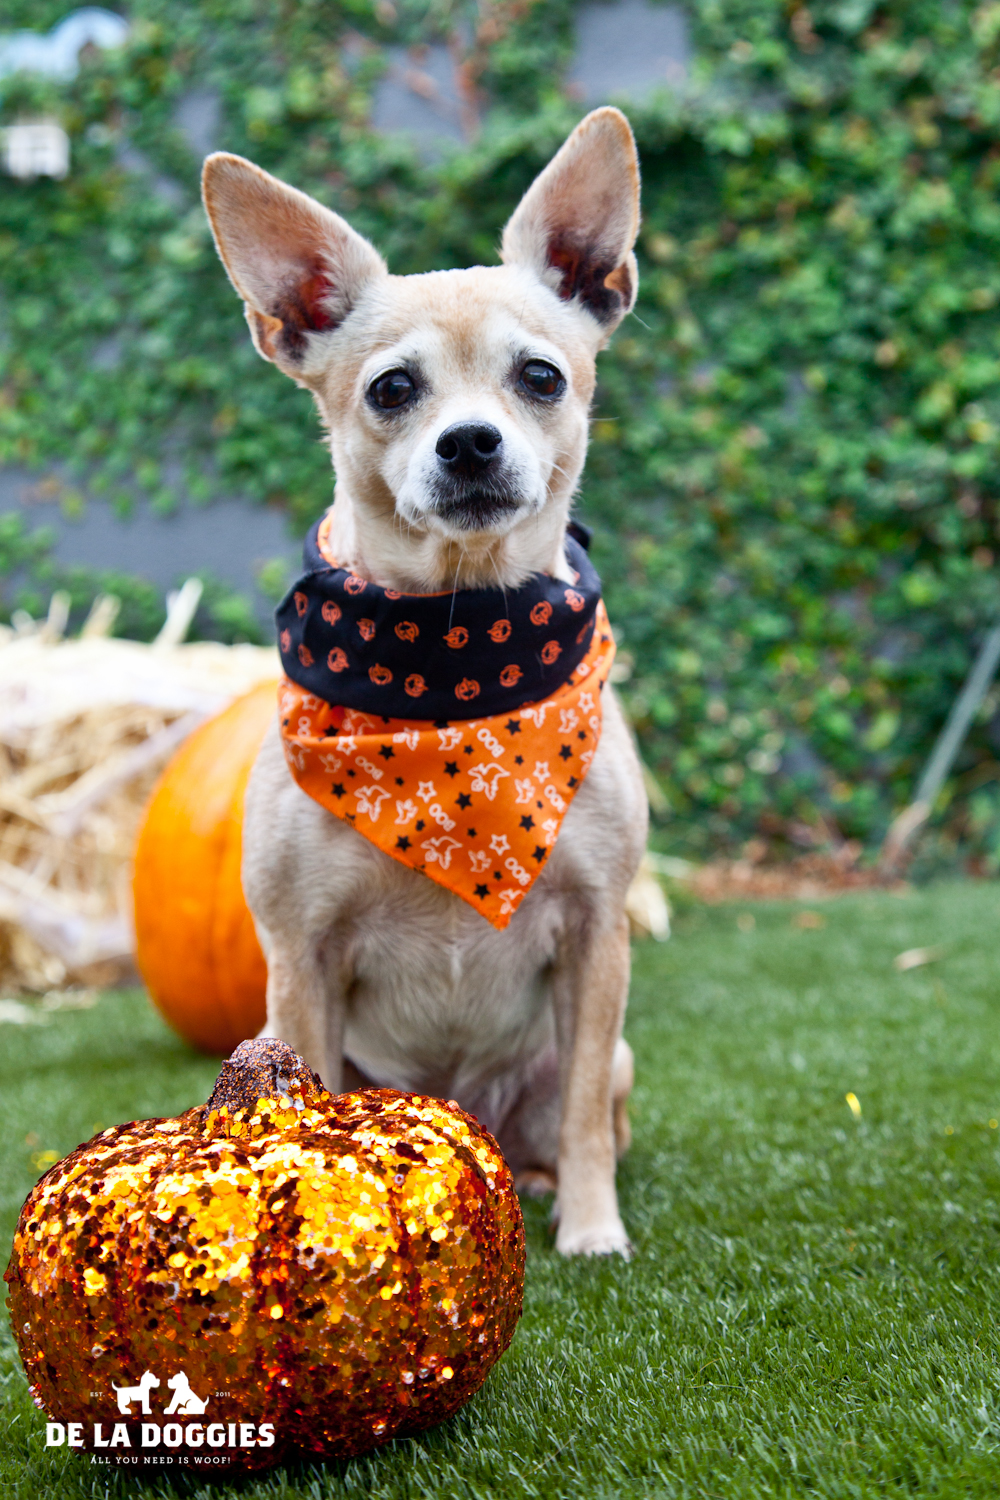 Hi my name is Queen. A1428384 I am a spayed 7 year old, female, tan Chihuahua - Smooth Coated. I have been at the shelter since Oct 01, 2013. Please come meet me!  1850 West 60th street   Los Angeles, CA 90047 L.A. 90018 (213) 485-0214 (213) 485-0227 (213) 485-0303